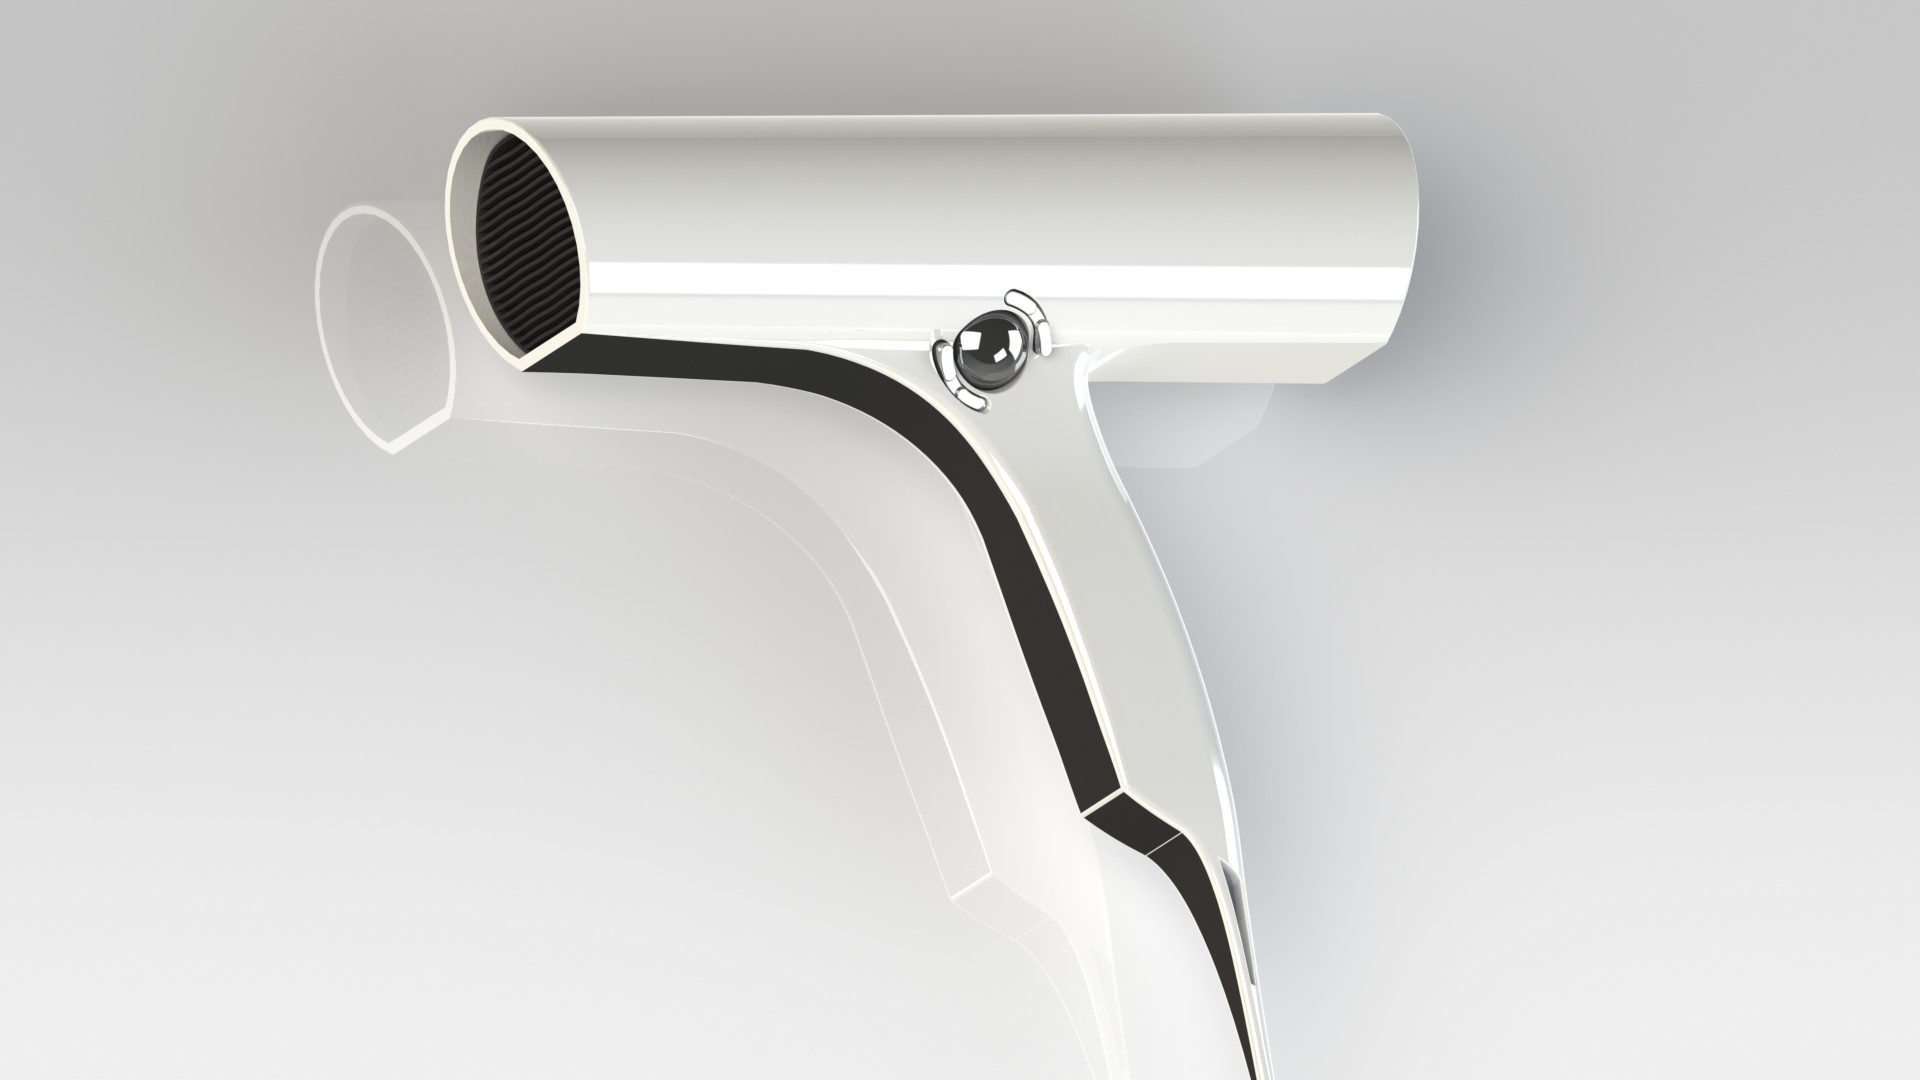 Hair Dryer Design ~ Hair dryer design by johan de beer at coroflot